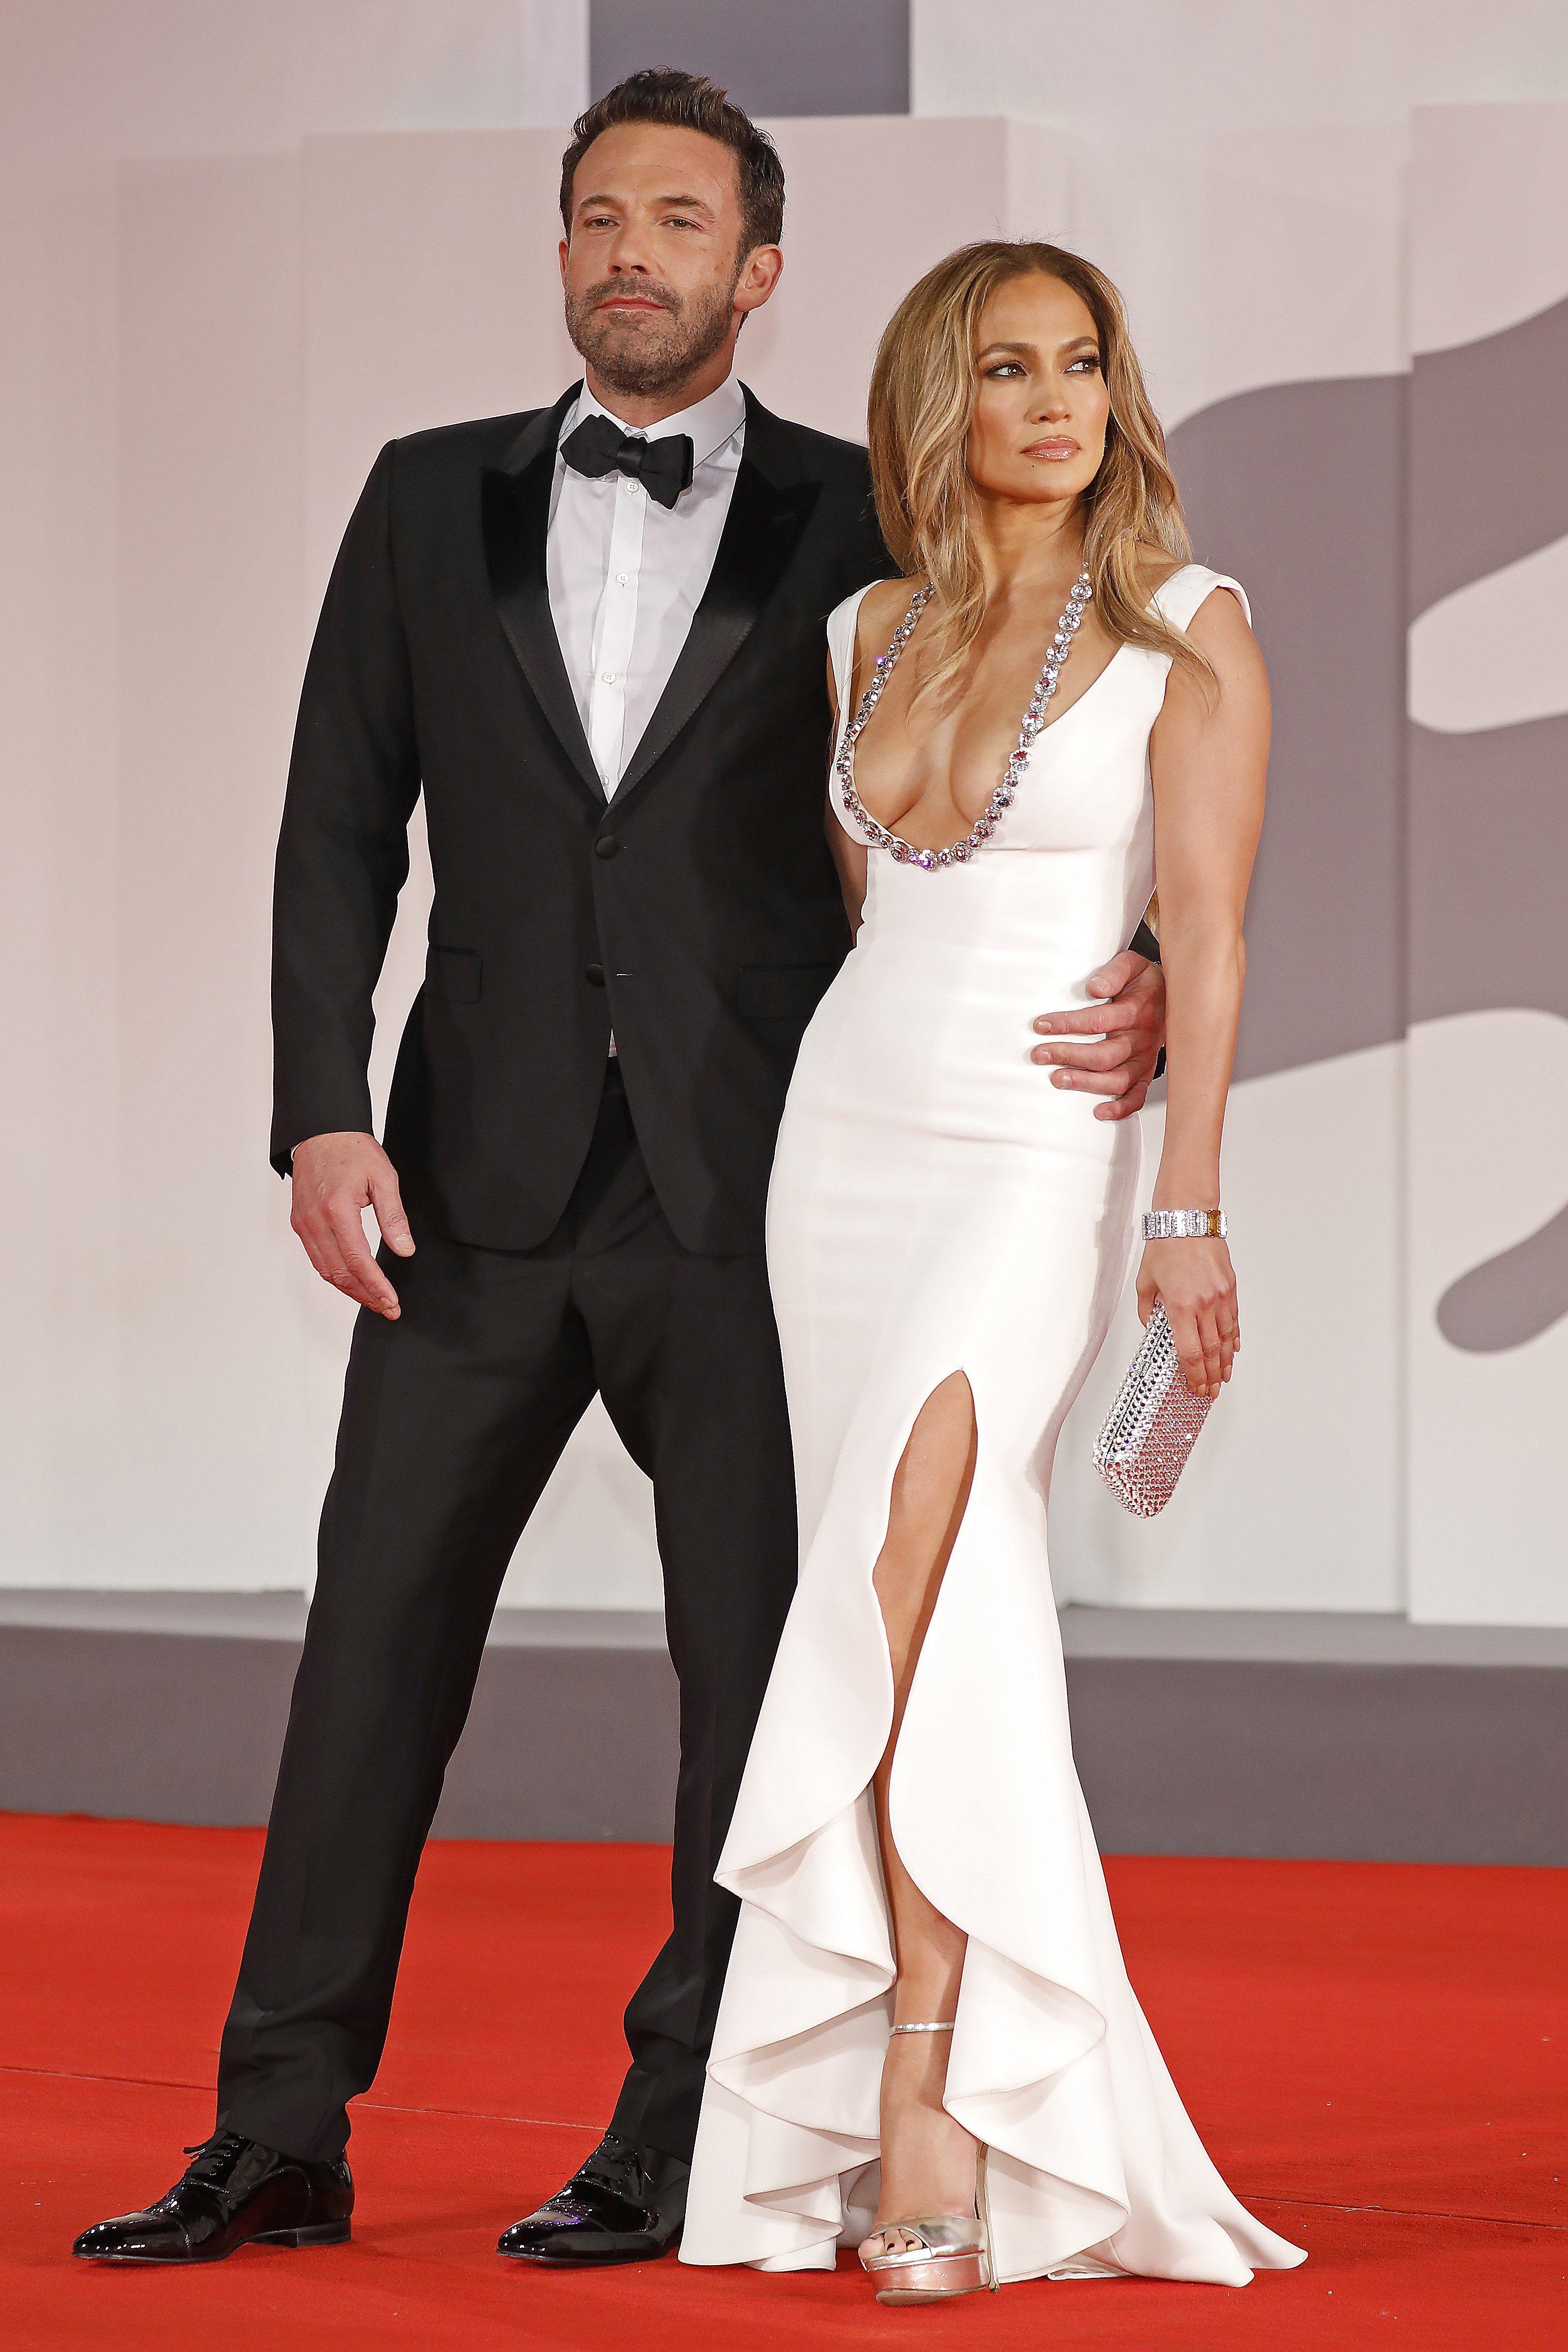 Ben Affleck and Jennifer Lopez on the red carpet for 'The Last Duel' during the 78th Venice International Film Festival in Venice, Italy | Photo: Lehman/Barcroft Media via Getty Images